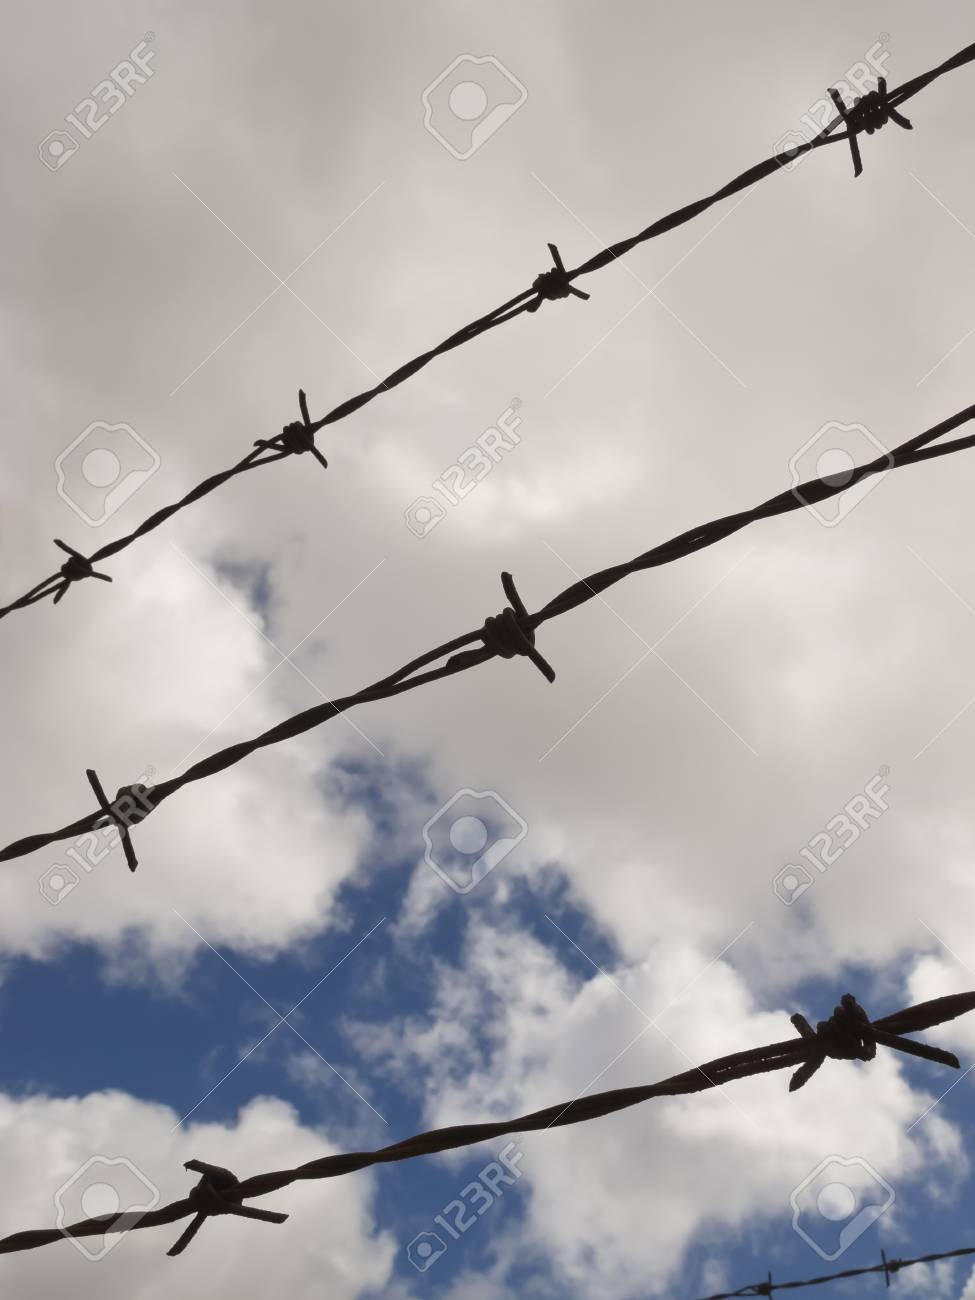 Barbed wire with a cloudy sky background Stock Photo - 17307842